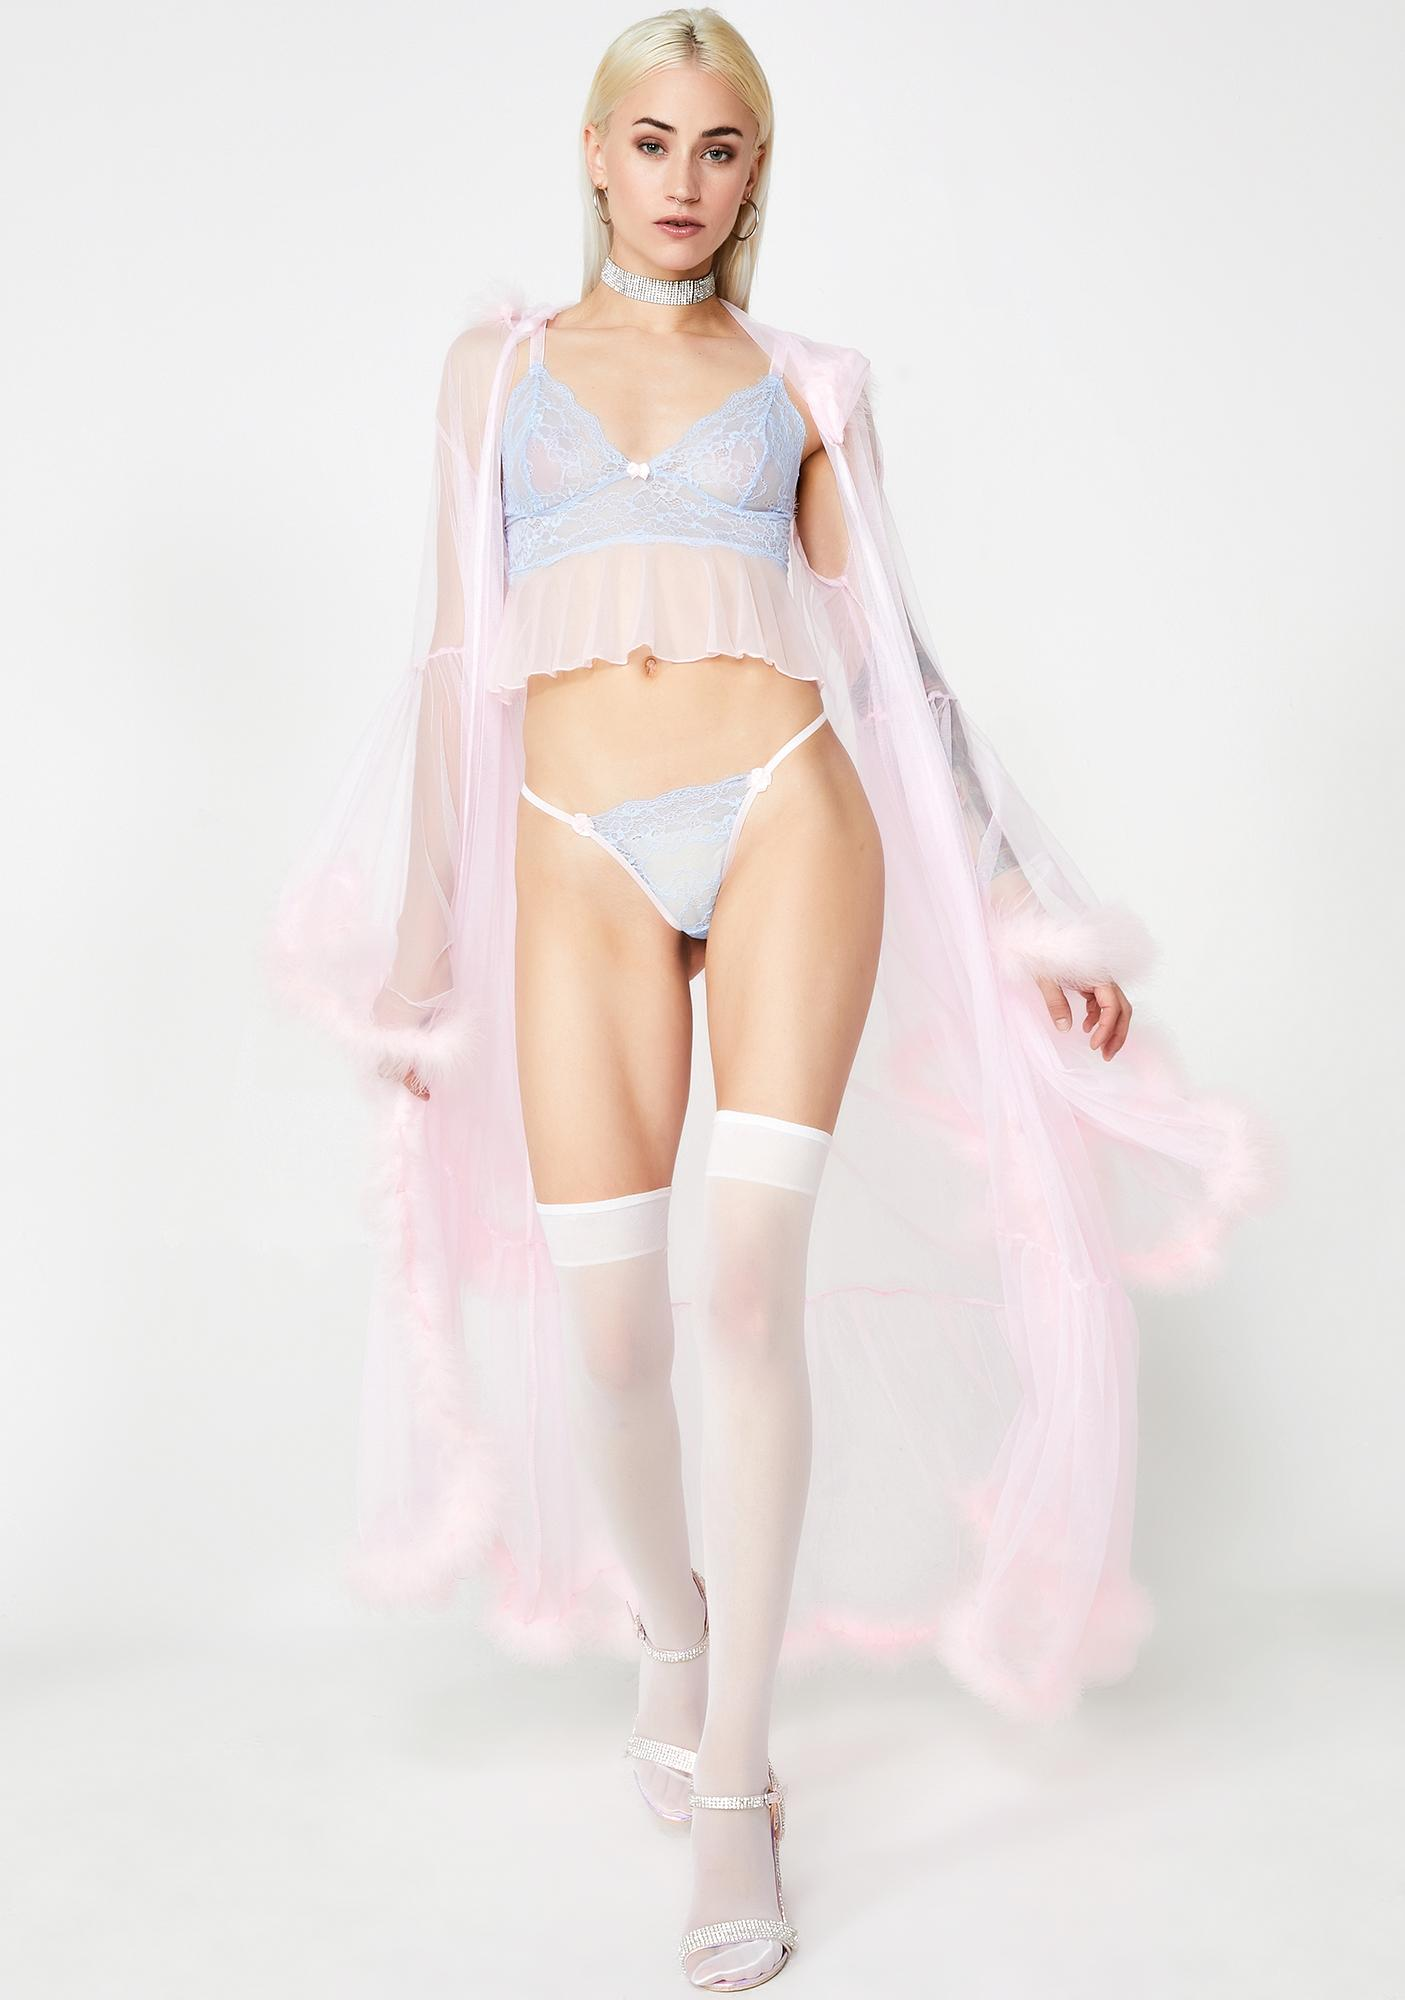 Hopelessly Romantic Lingerie Set